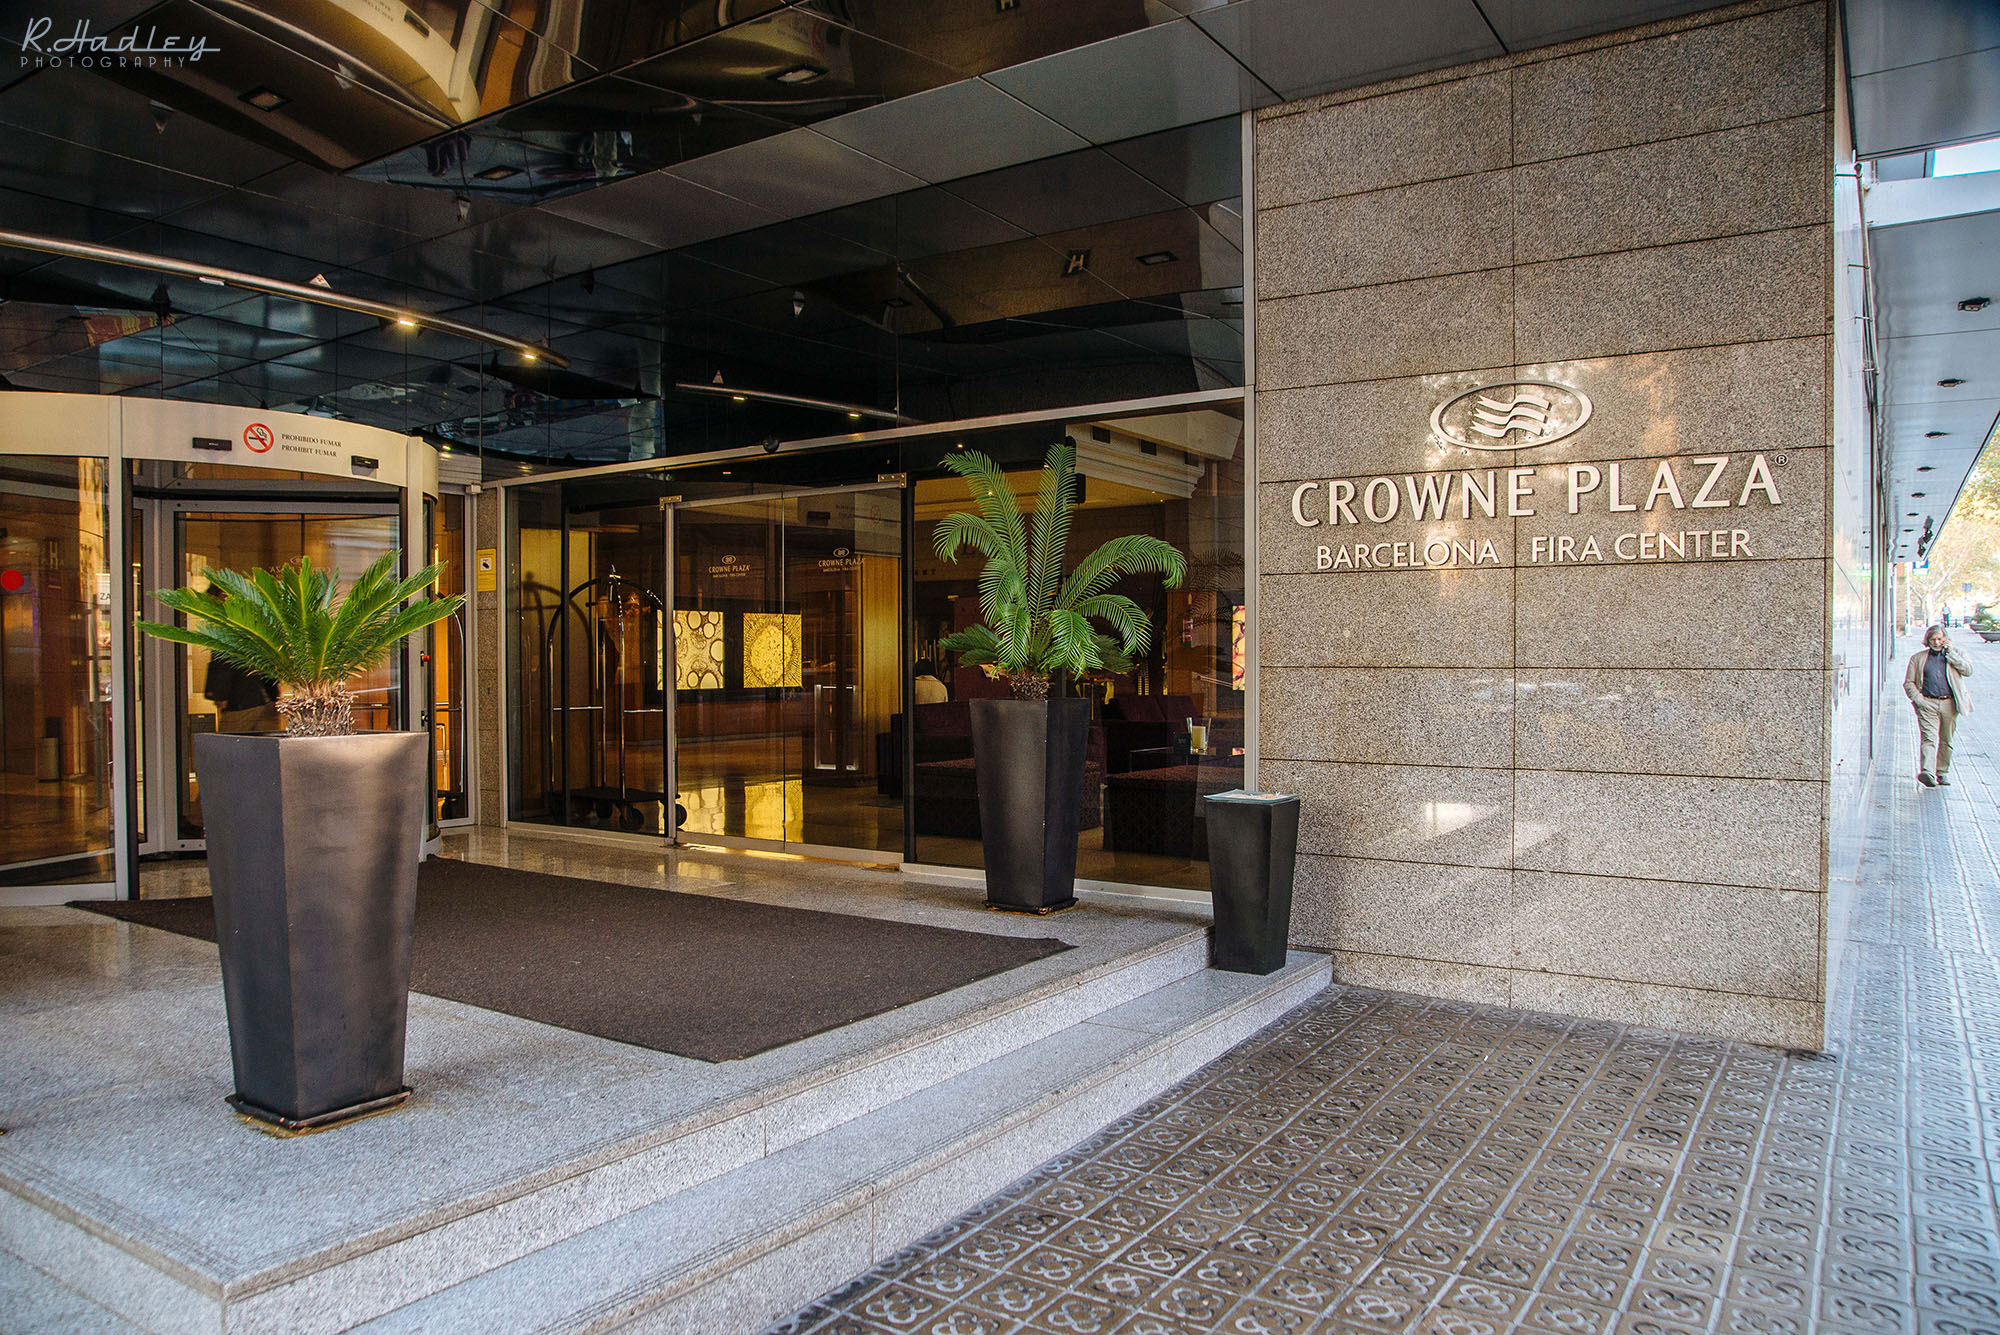 Corporate event photography at the Crowne Plaza in Barcelona